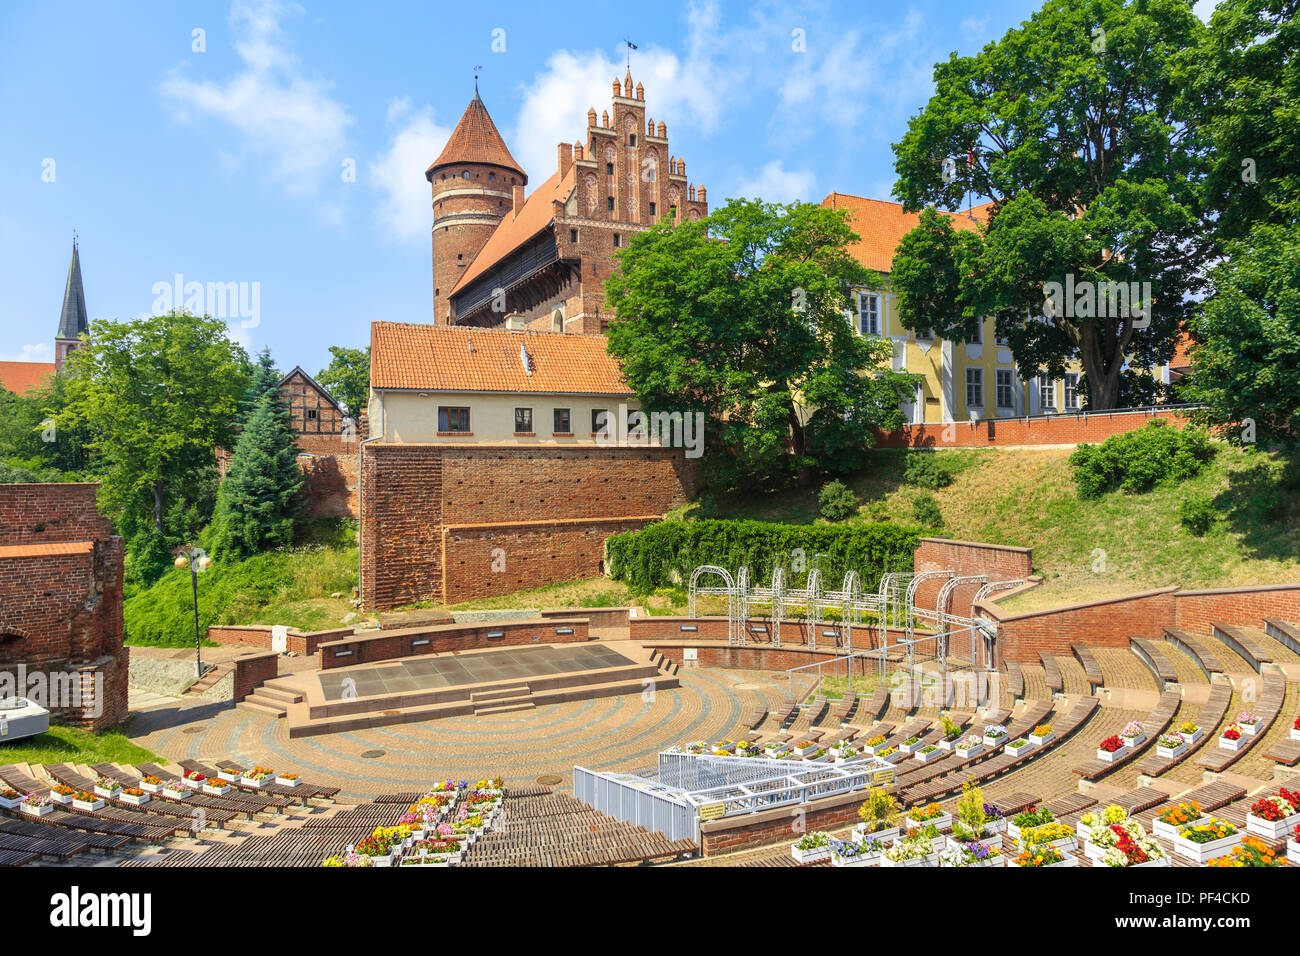 Amphitheater and Castle of Warmian Bishops in Olsztyn, northern Poland, built in the fourteenth-century in Gothic architectural style - Stock Image